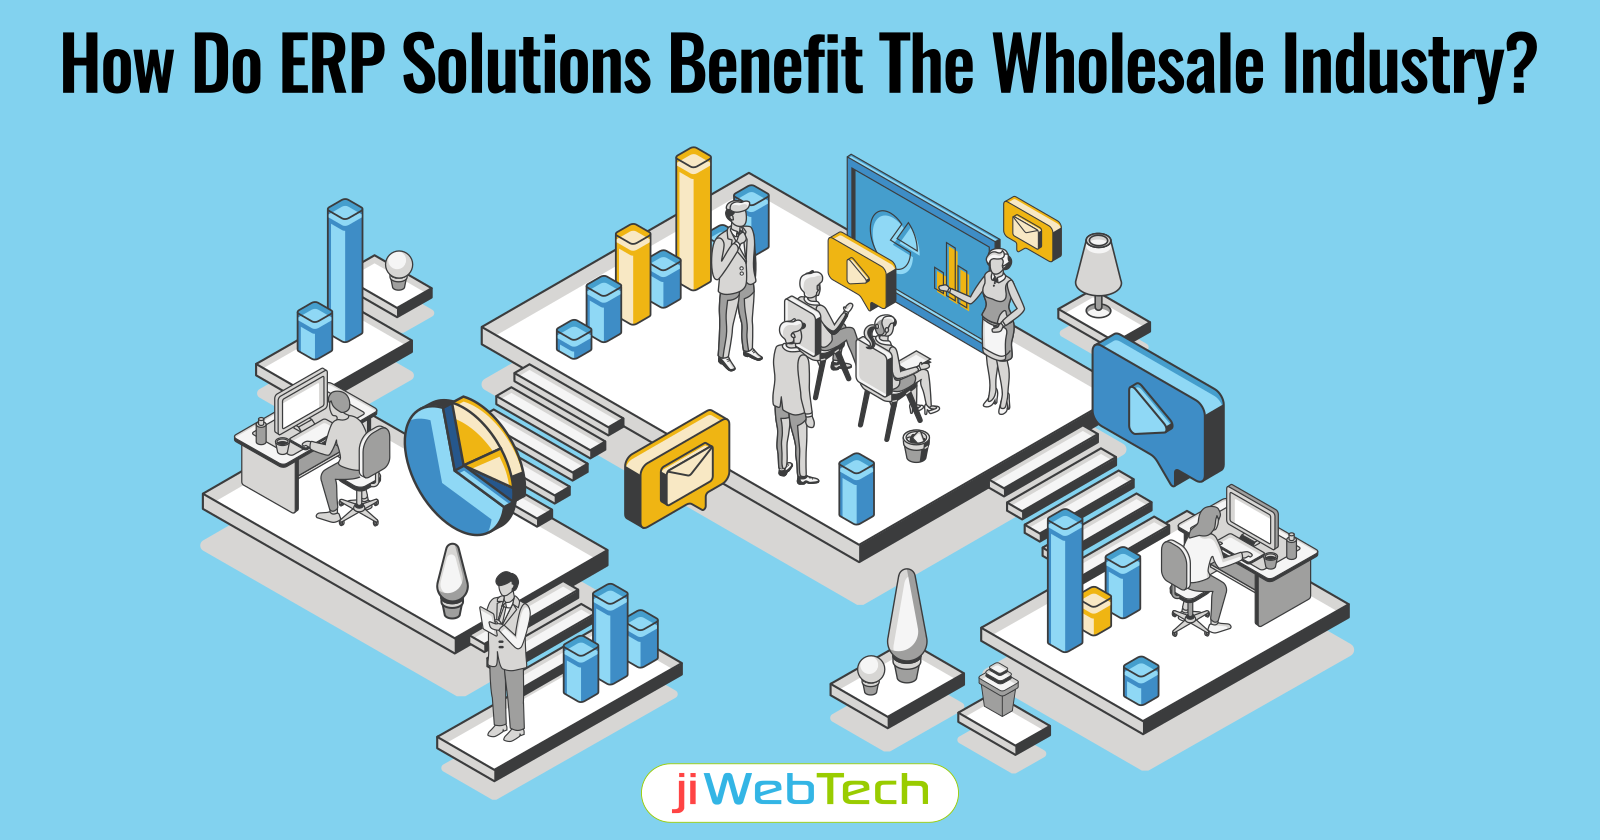 How Do ERP Solutions Benefit The Wholesale Industry?